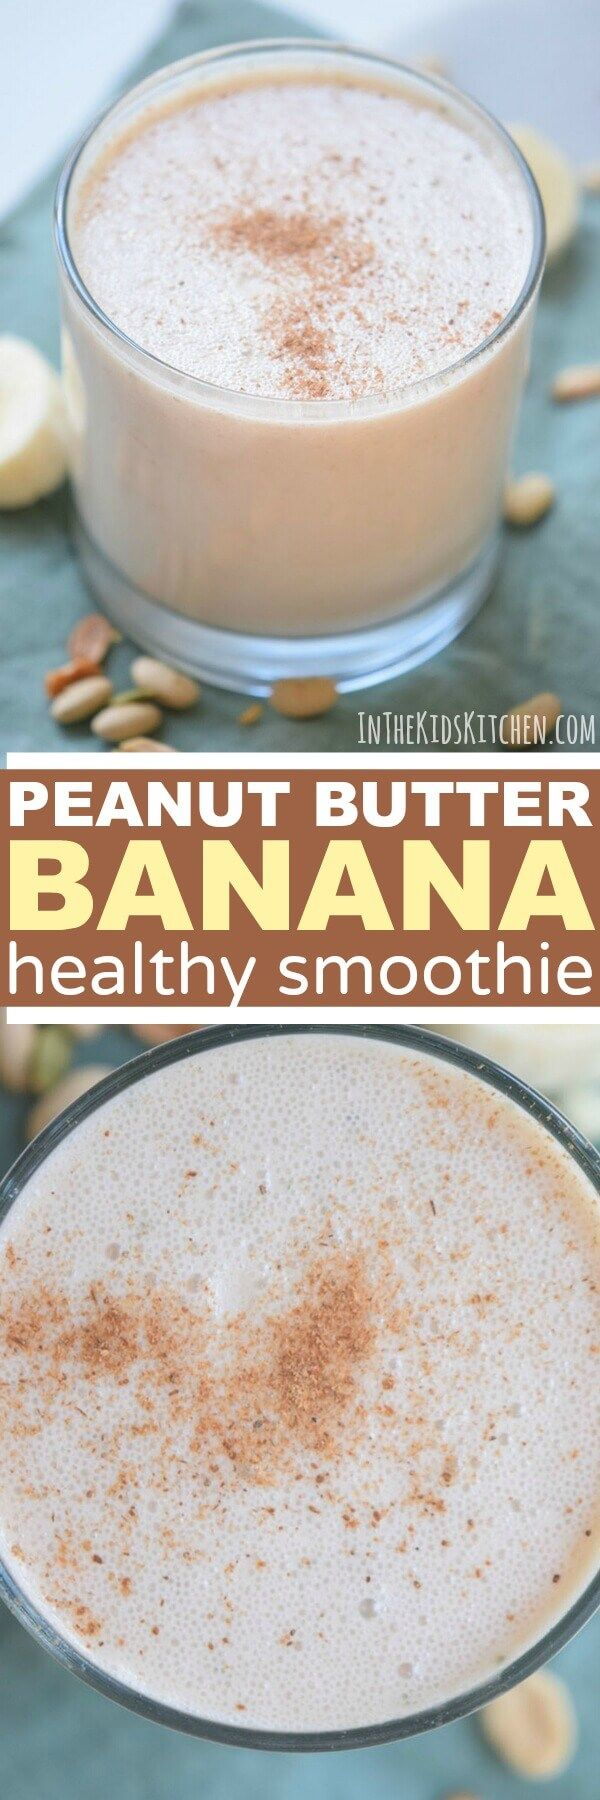 Healthy Peanut Butter Banana Smoothie - In the Kids' Kitchen